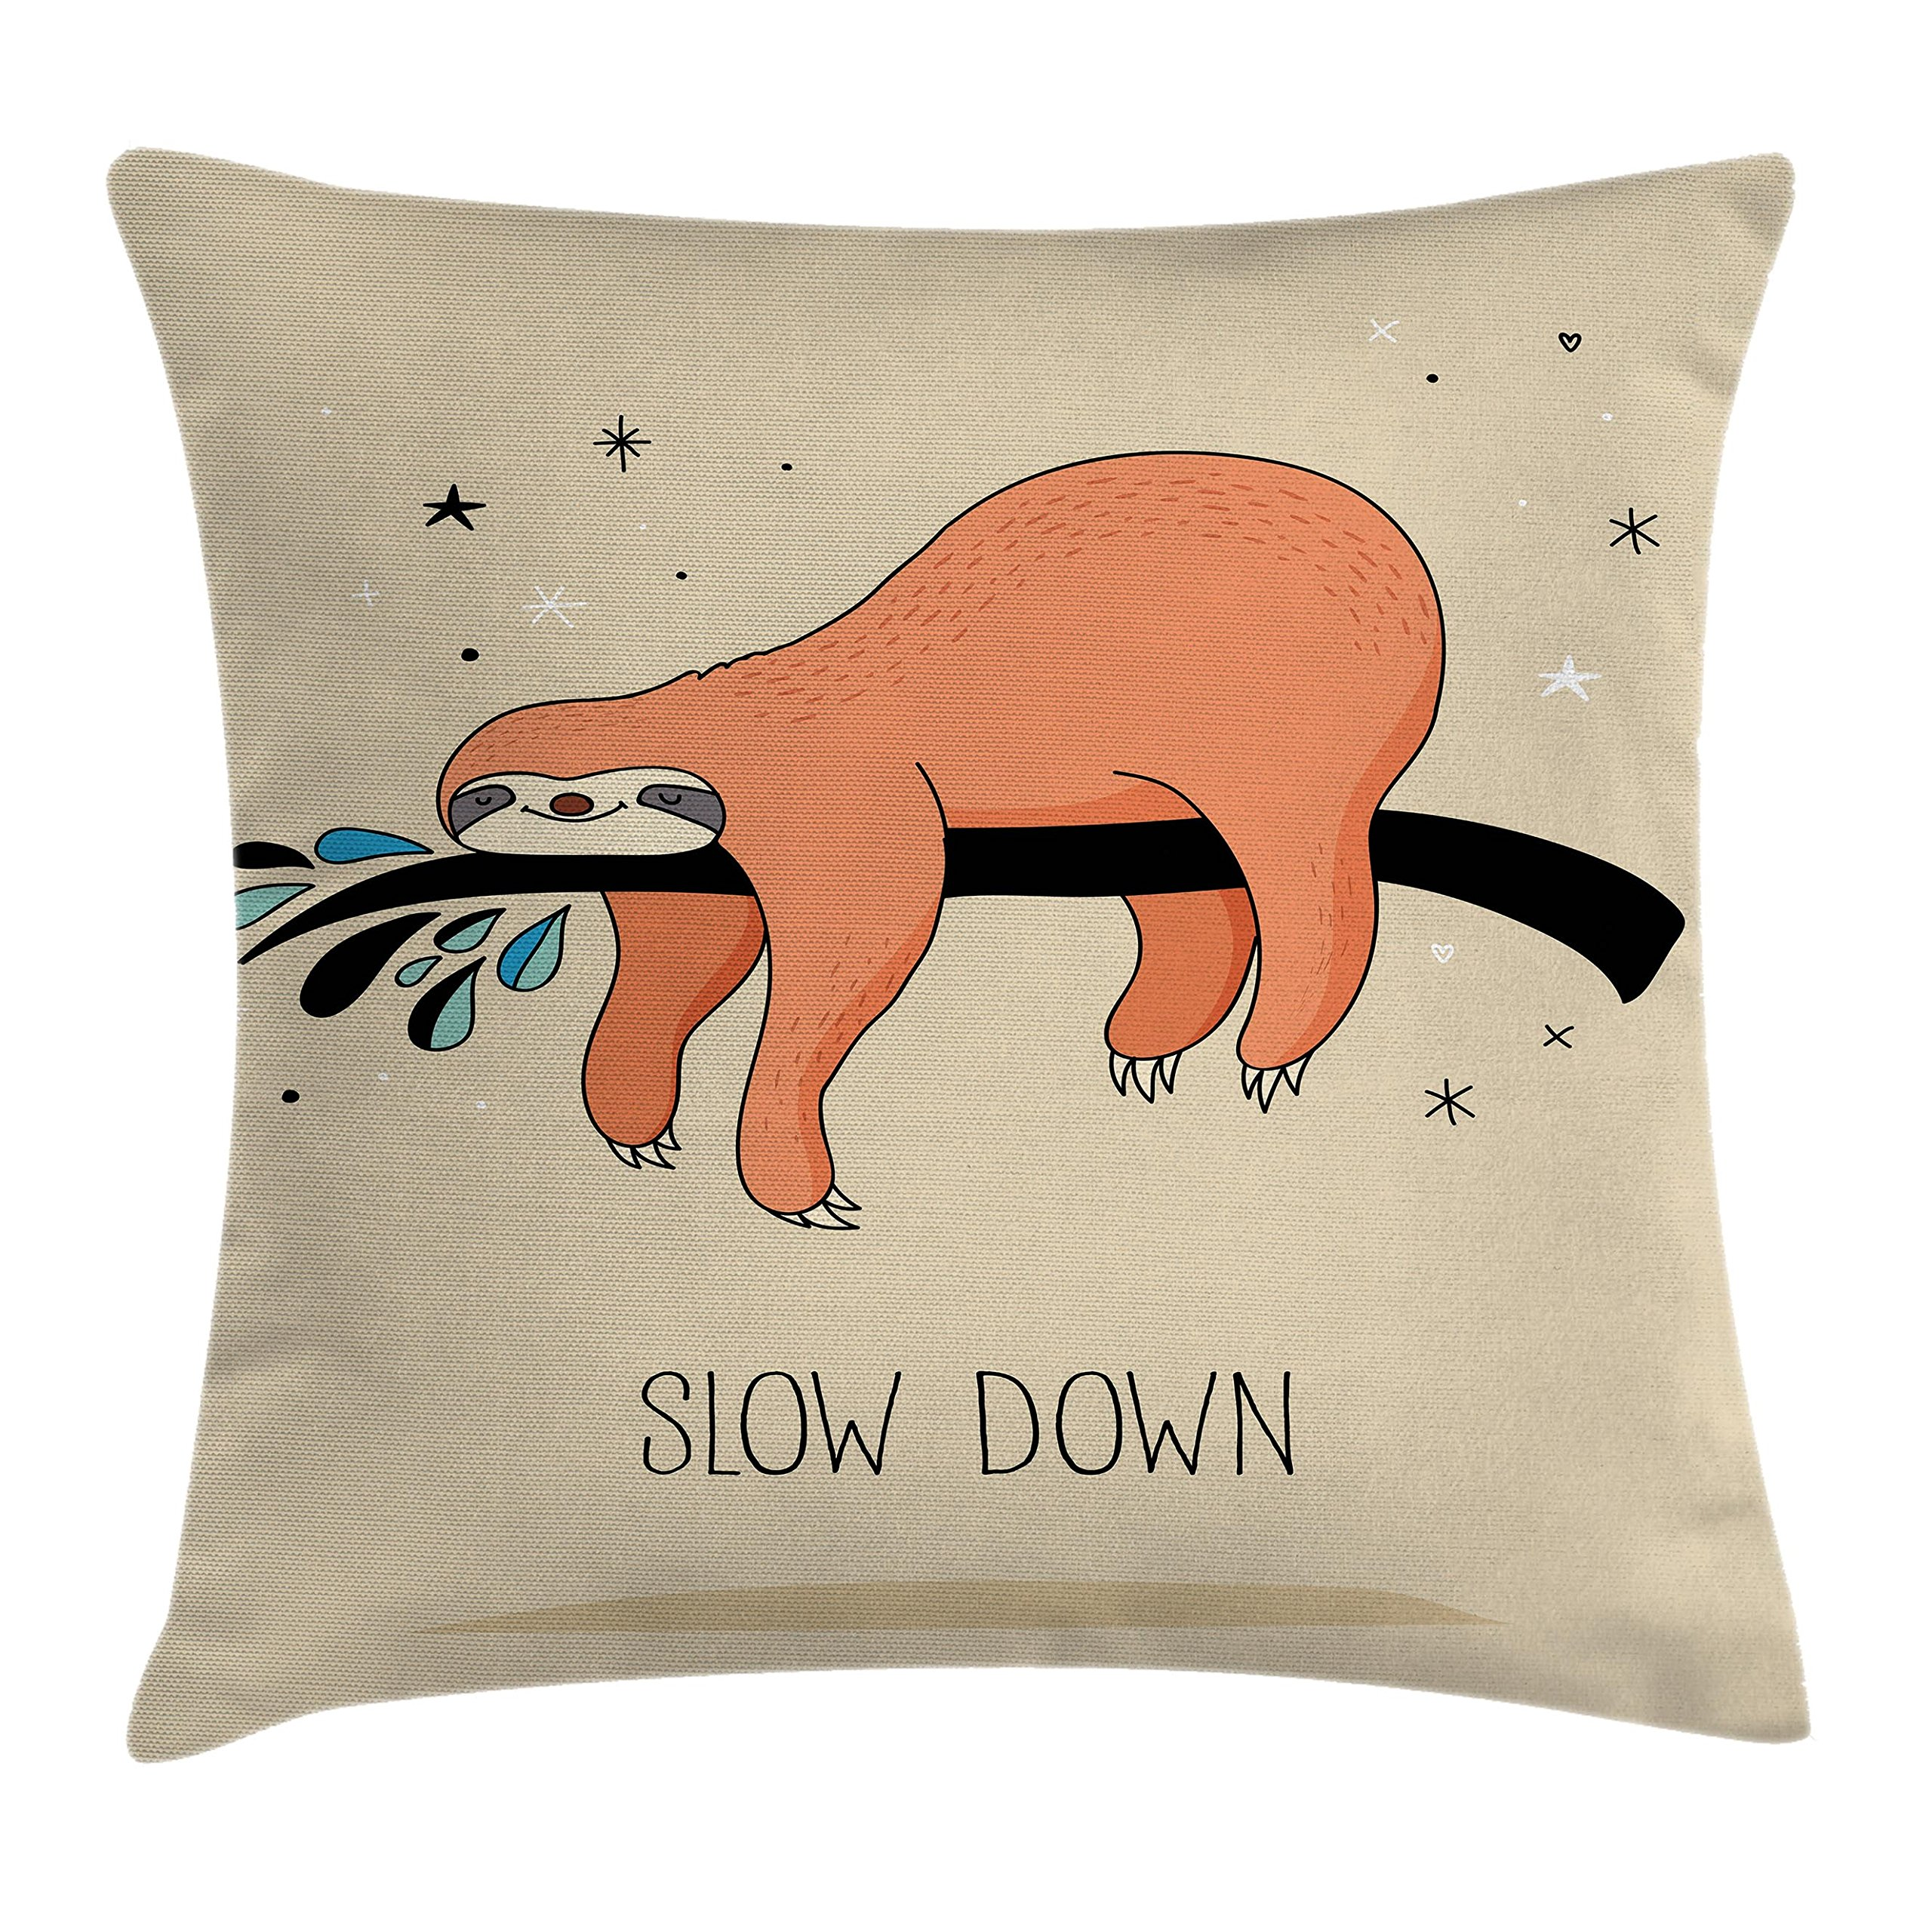 Ambesonne Animal Decor Throw Pillow Cushion Cover, Sleeping Big Bear Sloth Hanging on a Bench Cozy Lazy Wild Creature Image, Decorative Square Accent Pillow Case, 18 X 18 Inches, Multicolor